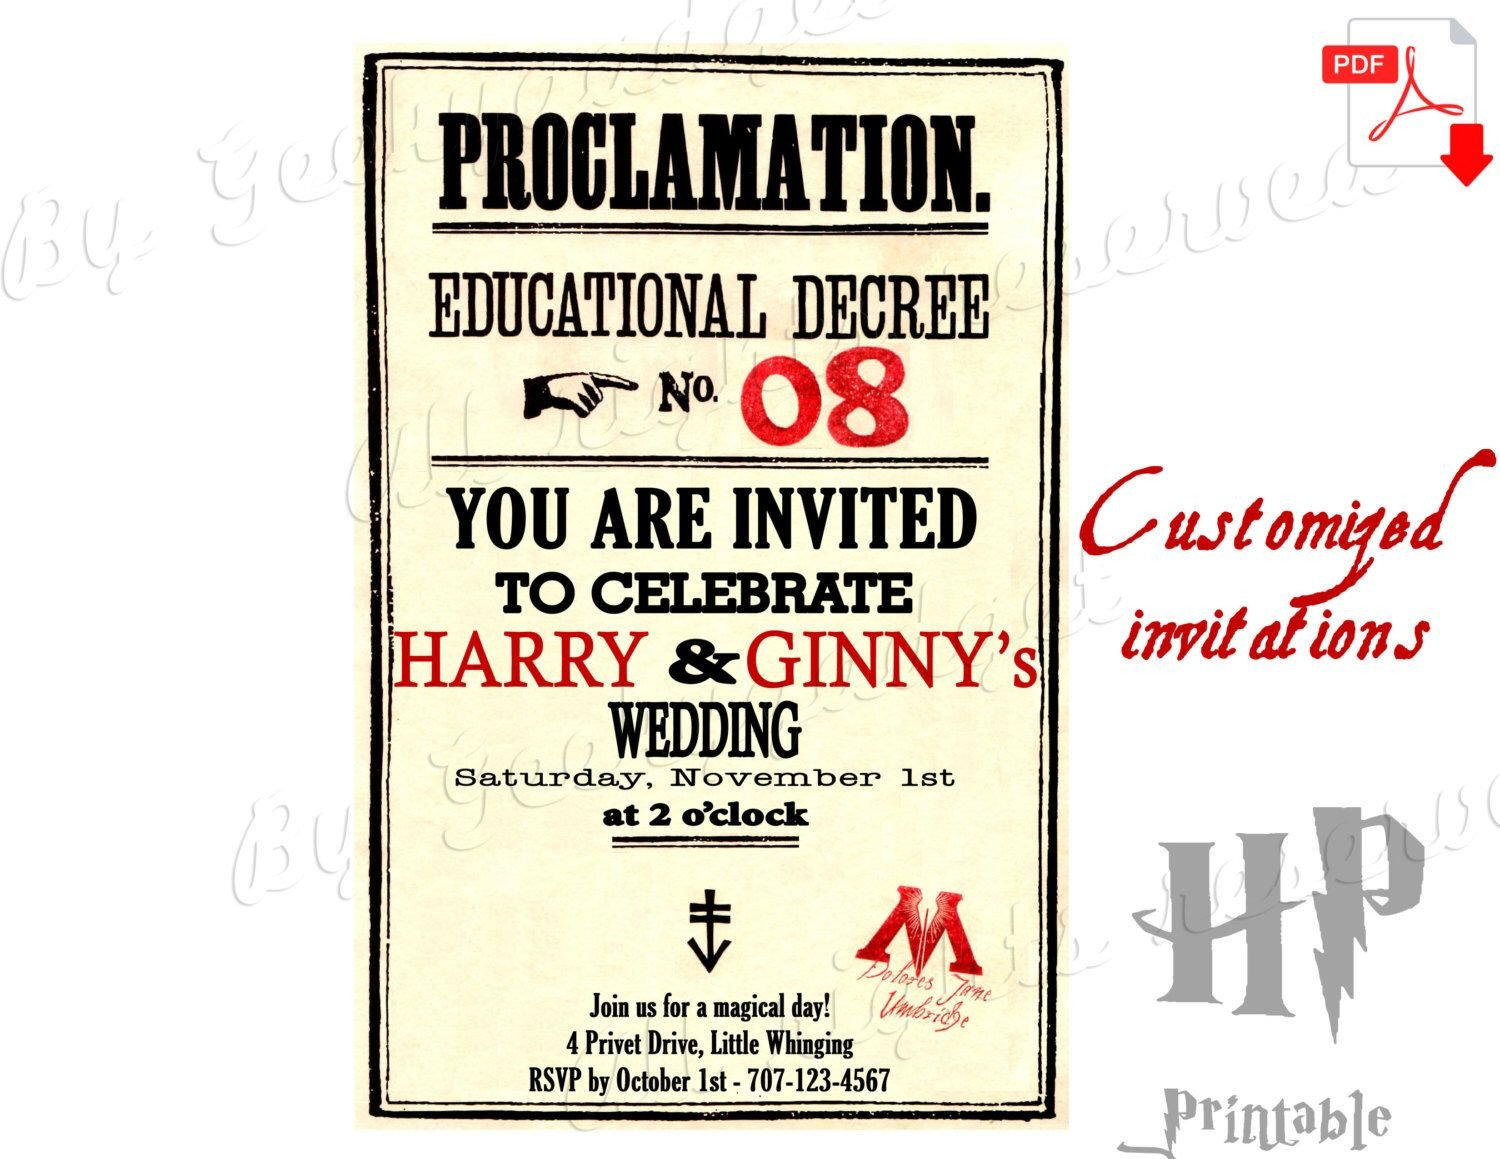 Harry Potter Proclamation Template Customized Save the Date Wedding Invitations Educational